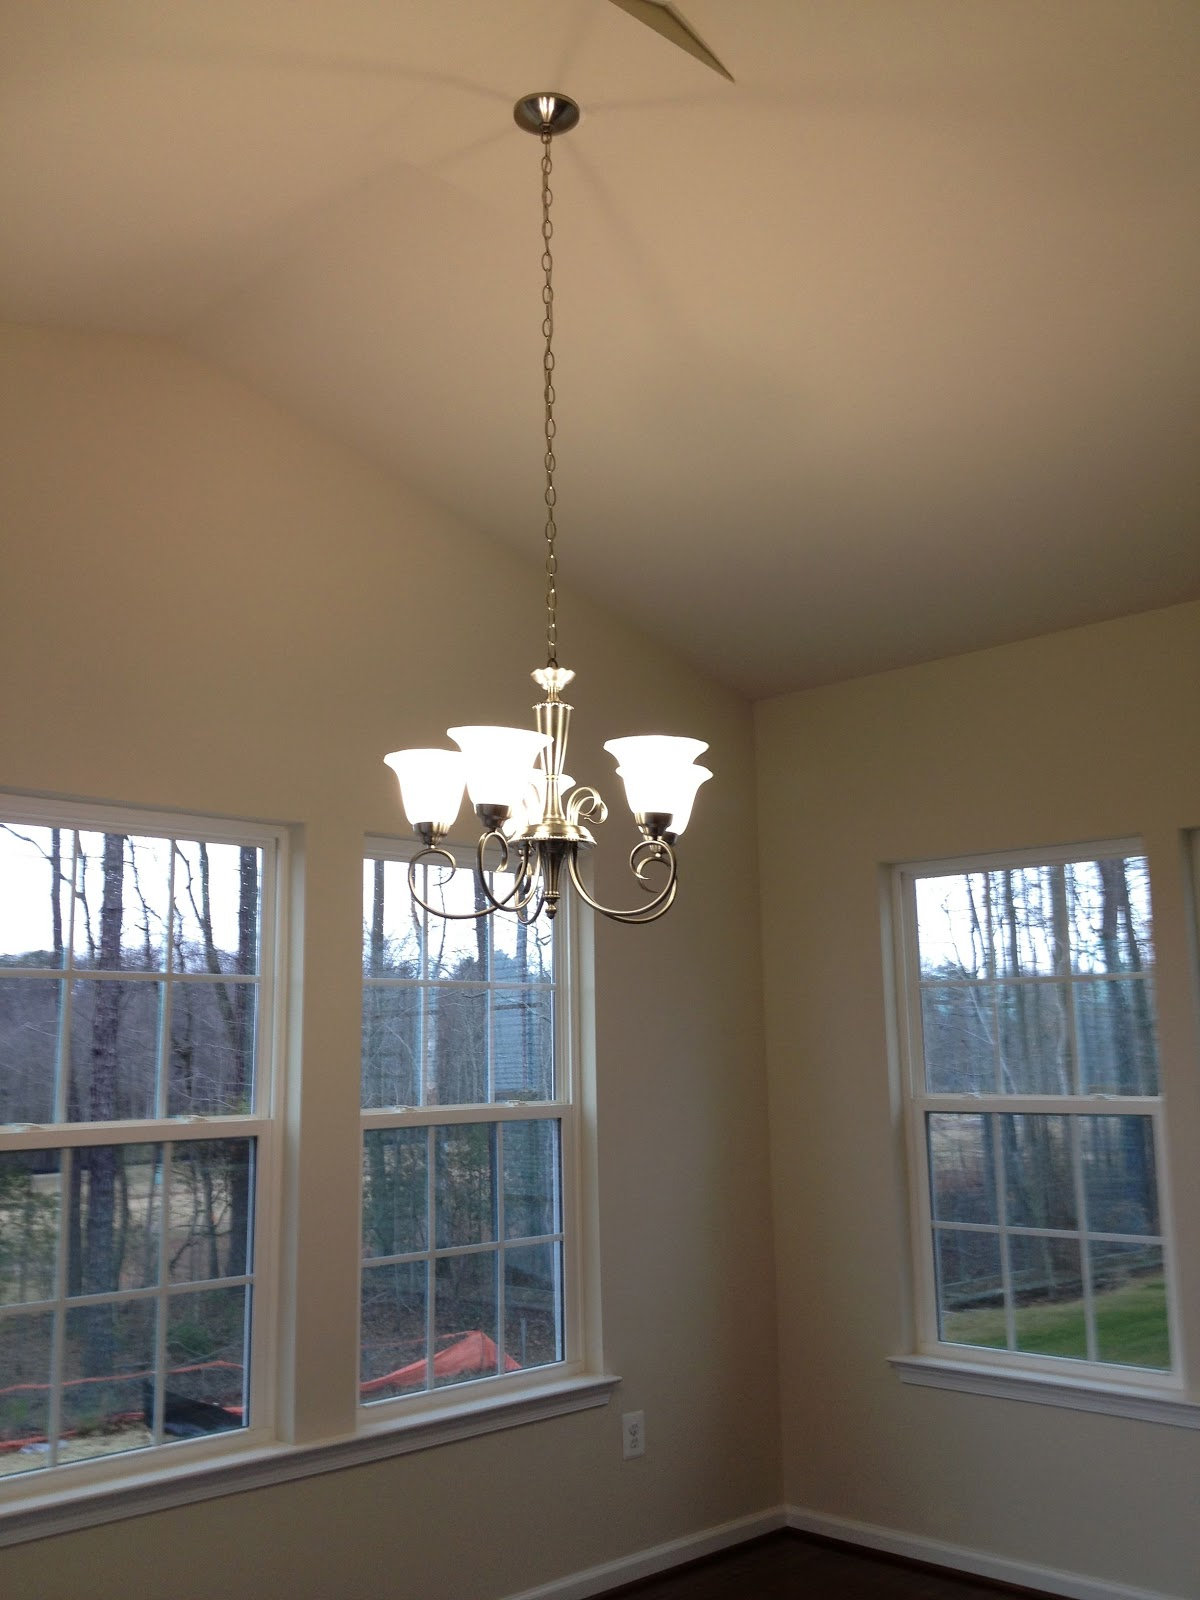 Ceiling fans and chandelier installed! | Dreaming of a Ryan Homes ...:Morning Room: Portfolio 5-Light Brushed Nickel Chandelier,Lighting